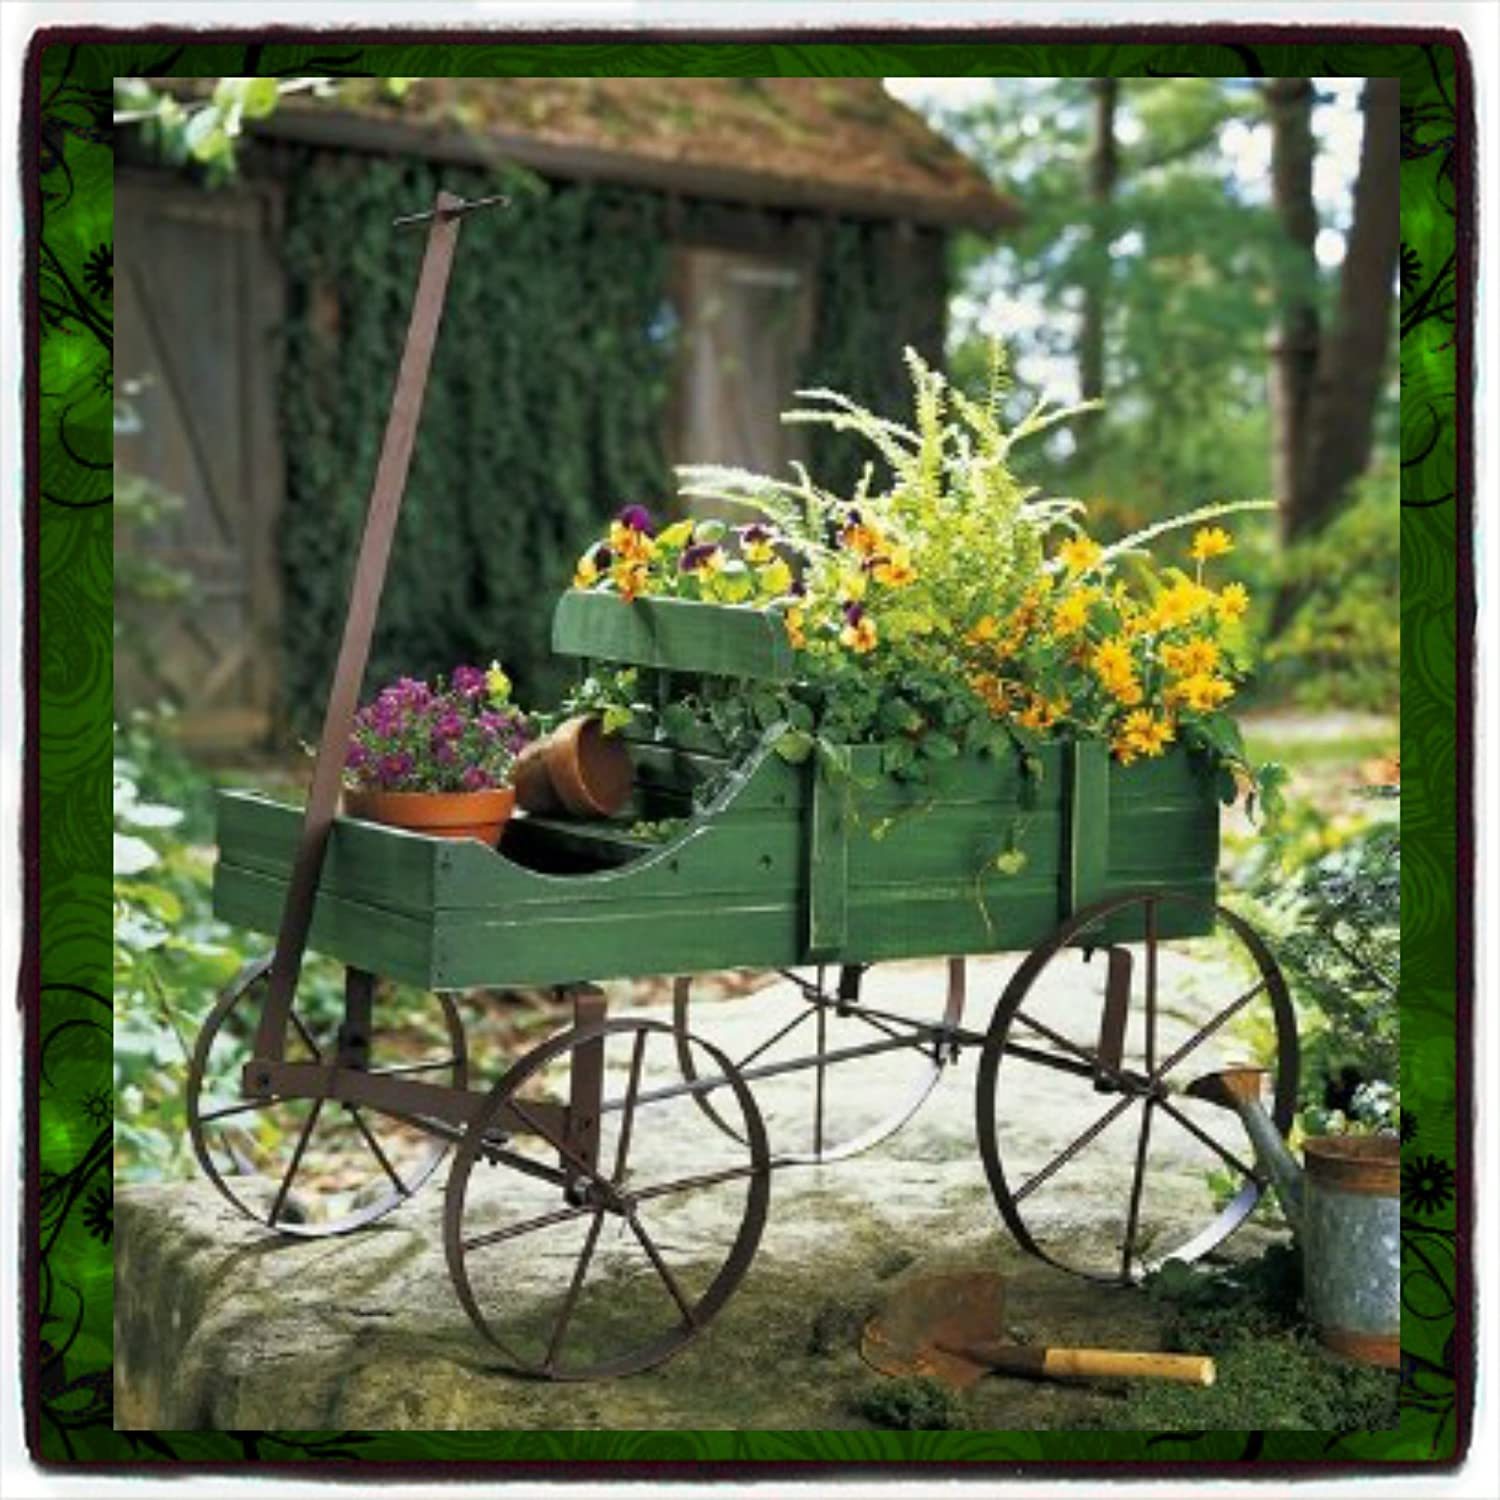 High Quality Amazon.com : Plant Stands Patio Wagon Showcase Flowers Wood Pot Stand Cart  Planter Garden Metal Garden Pot Planter Outdoor Yard Holder Display Decor  Green ...